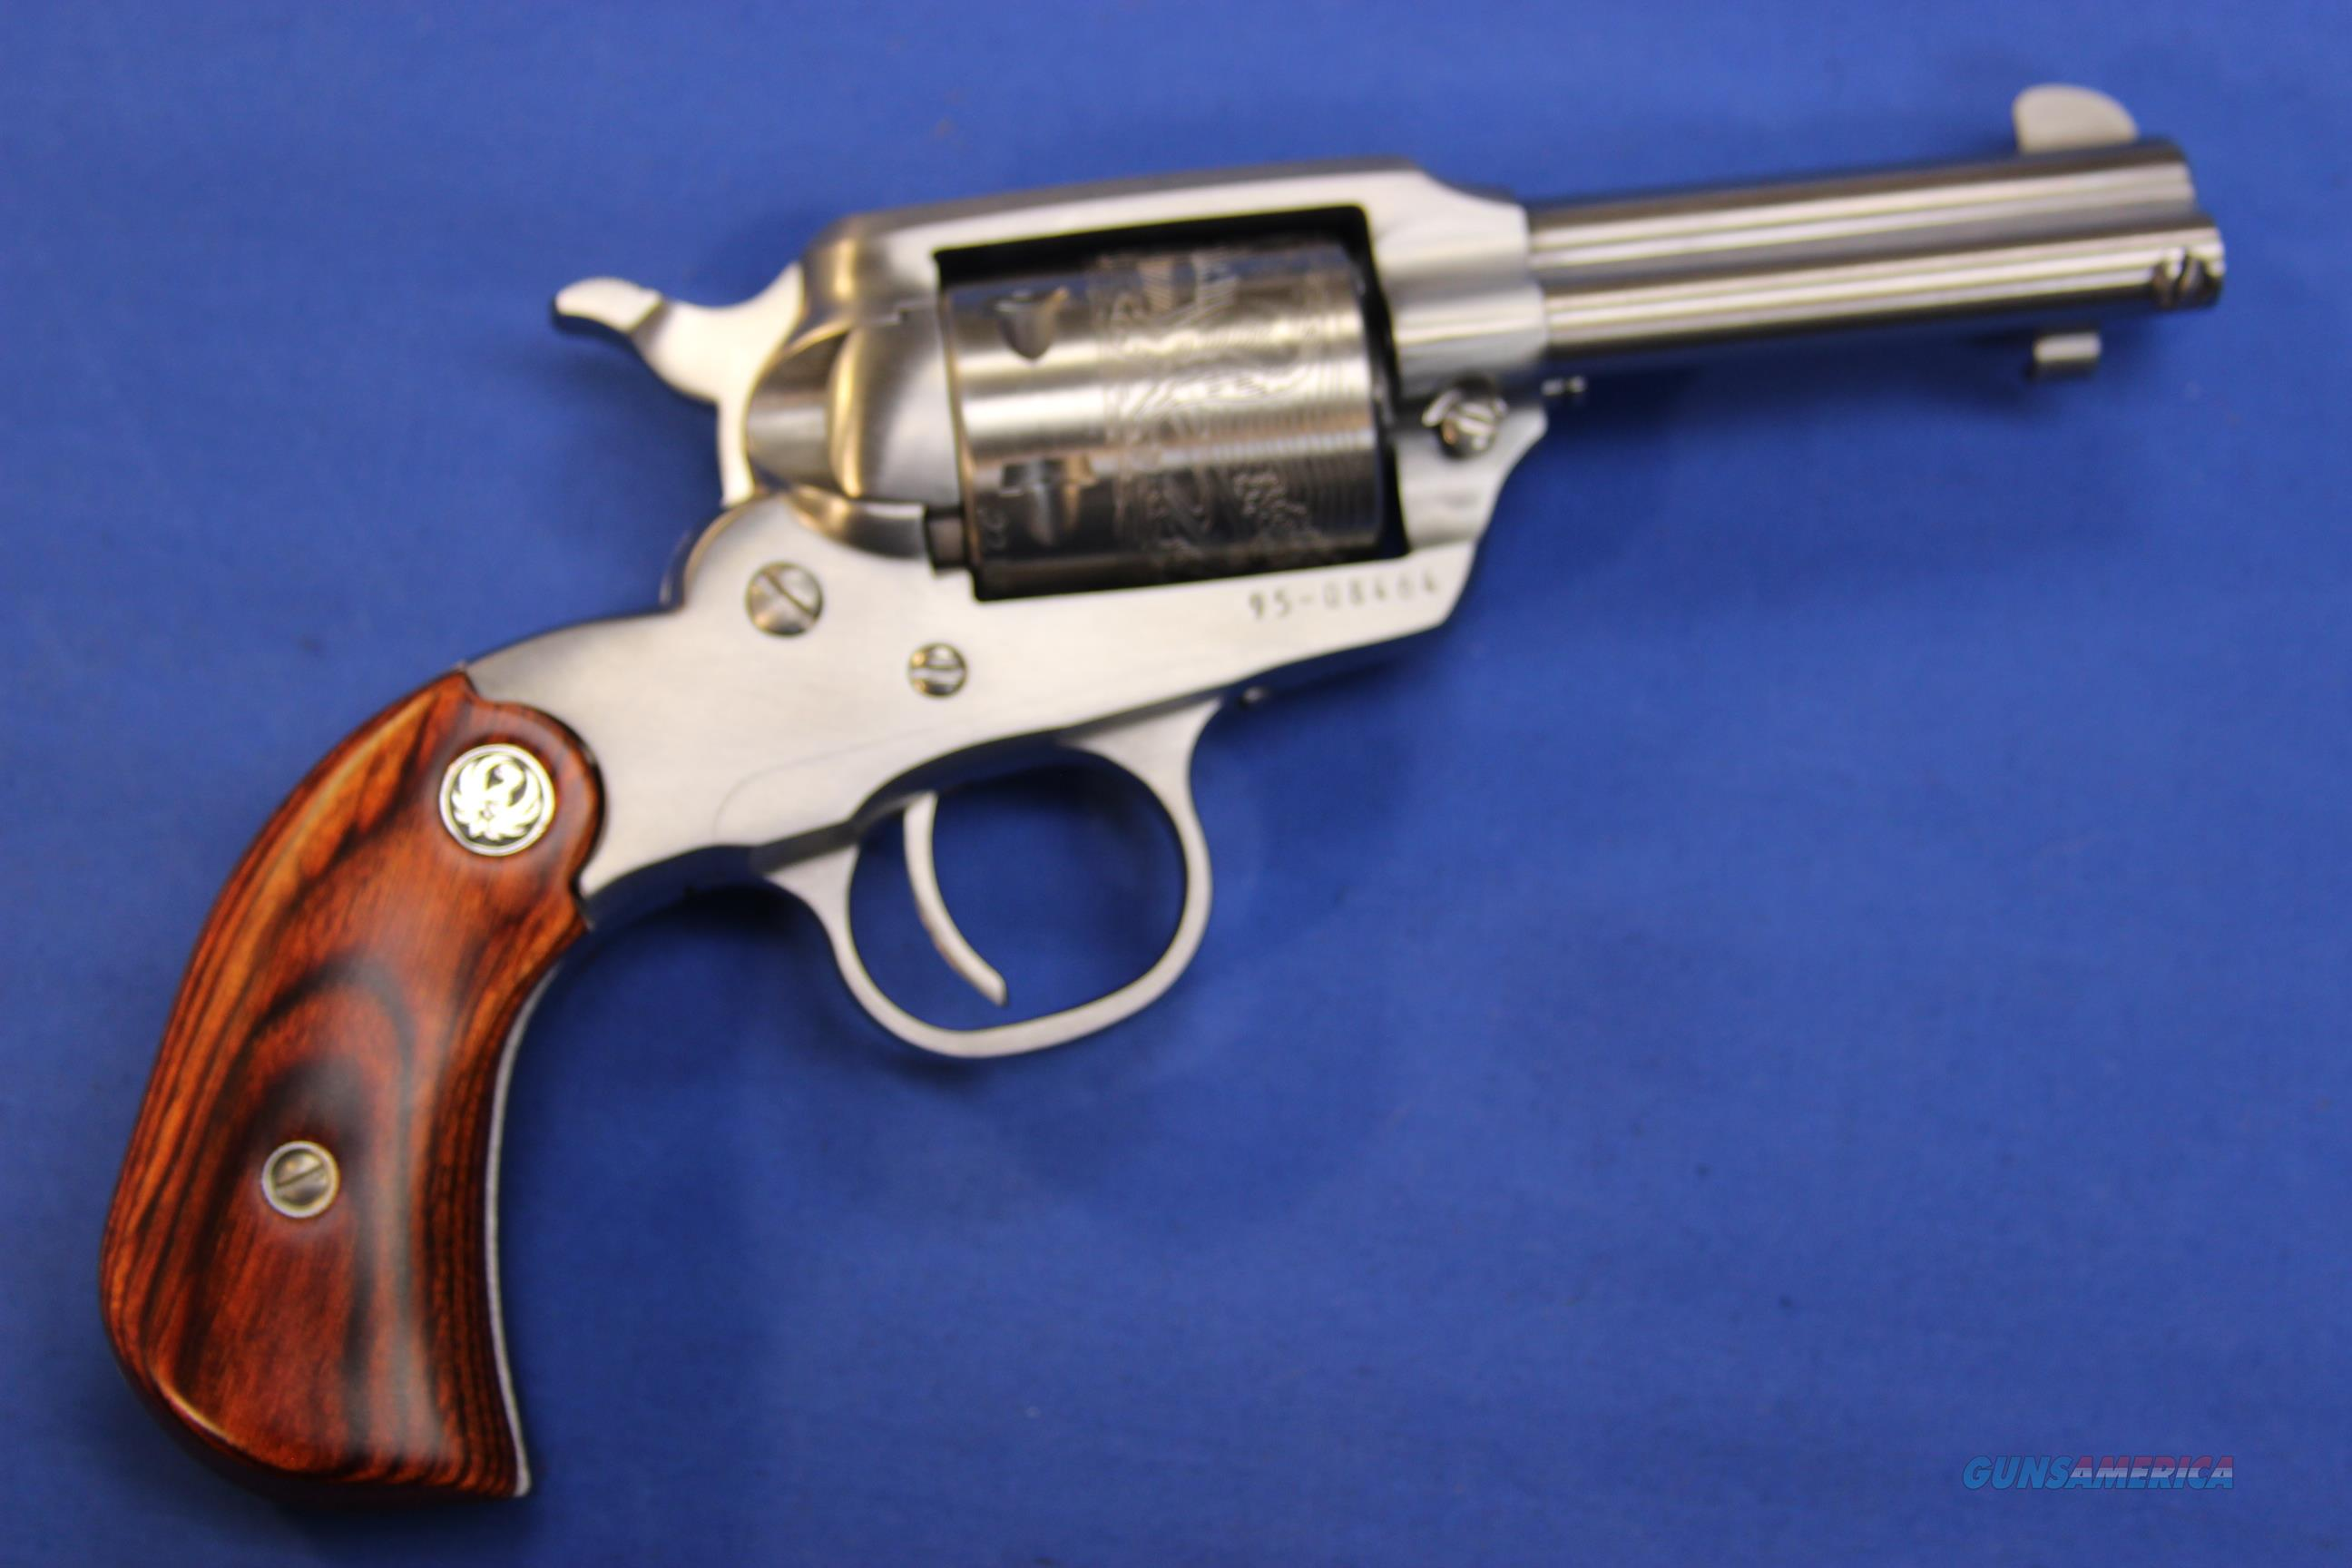 RUGER NEW BEARCAT SHOPKEEPER .22 LR w/ BOX  Guns > Pistols > Ruger Single Action Revolvers > Bearcat